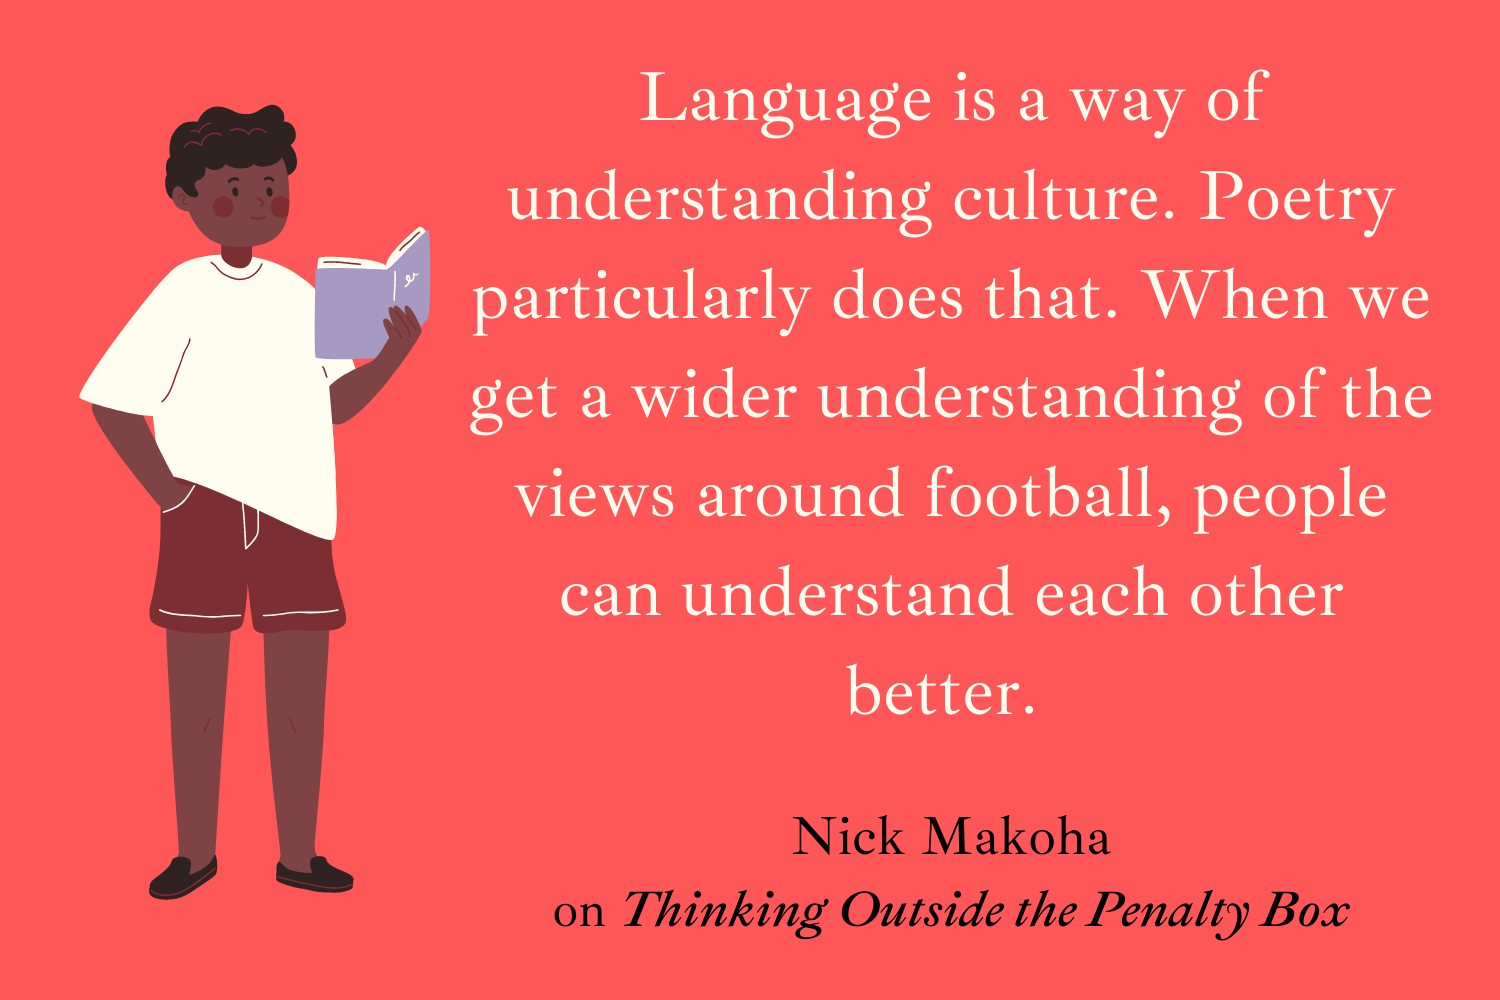 Language is a way of understanding culture. Poetry particularly does that. When we get a wider understanding of the views around football, people can understand each other better. Nick Makoha on Thinking Outside the Penalty Box